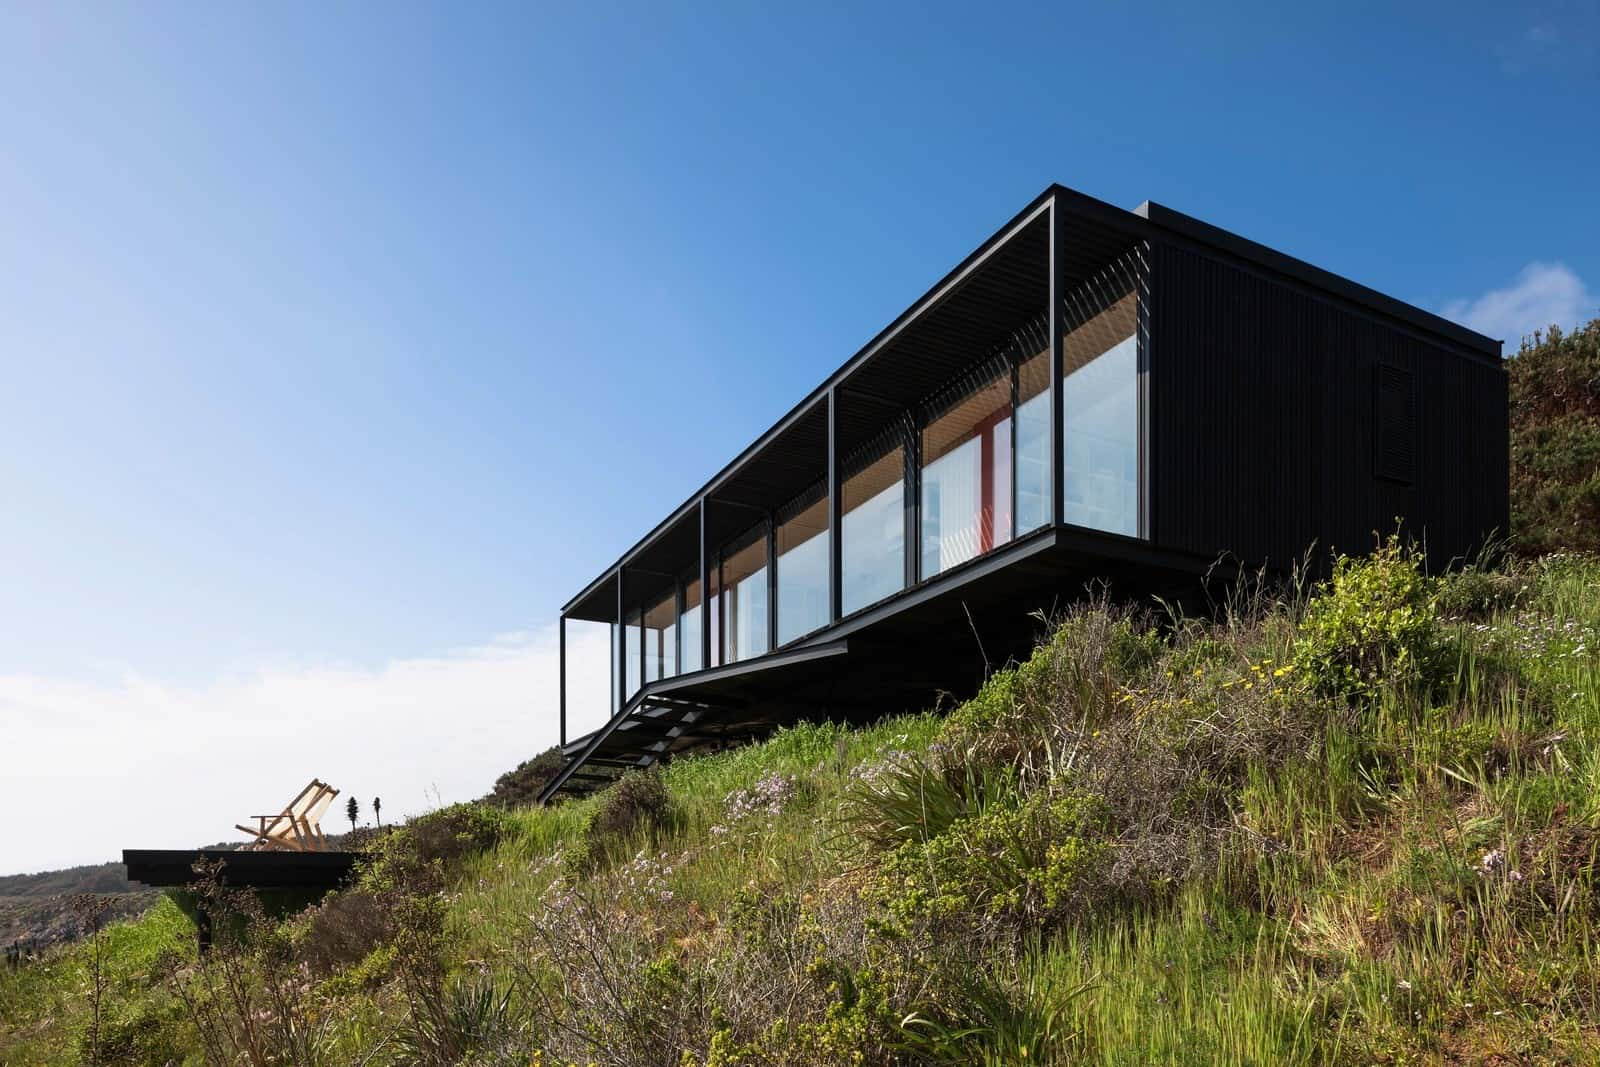 Remote Transportable Modular House in Chile by Felipe Assadi 2